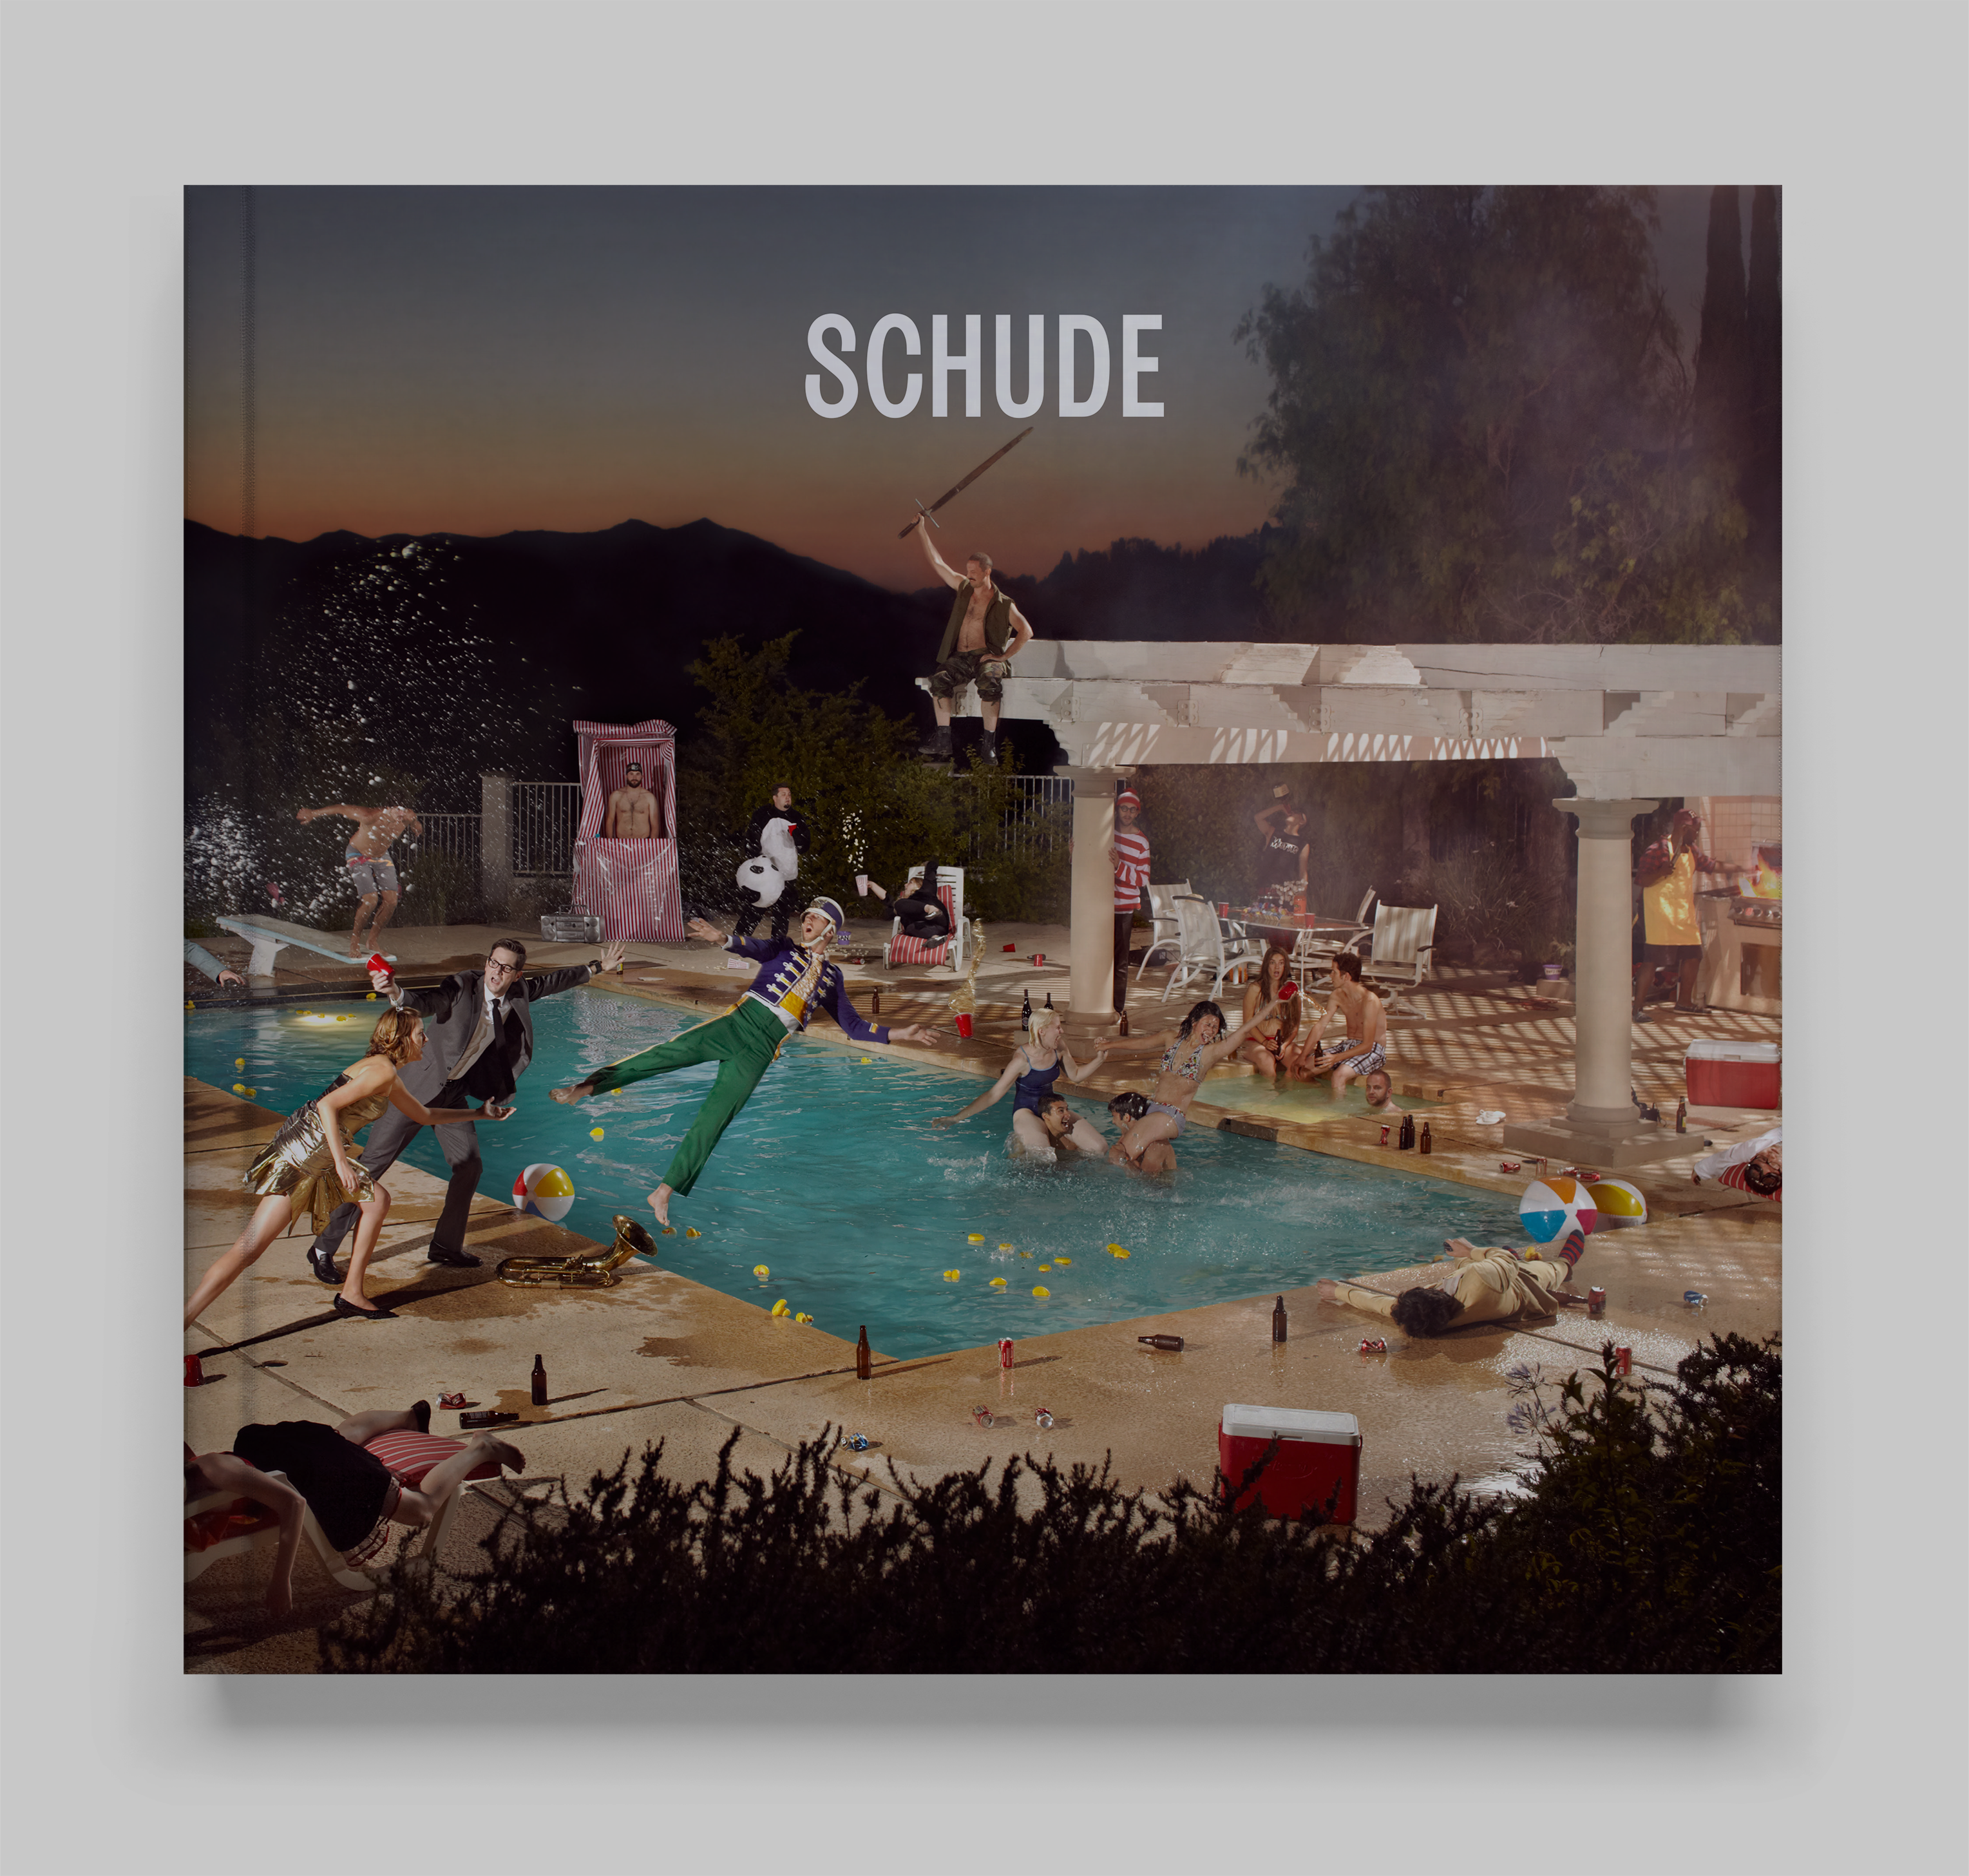 Cover image: Schude